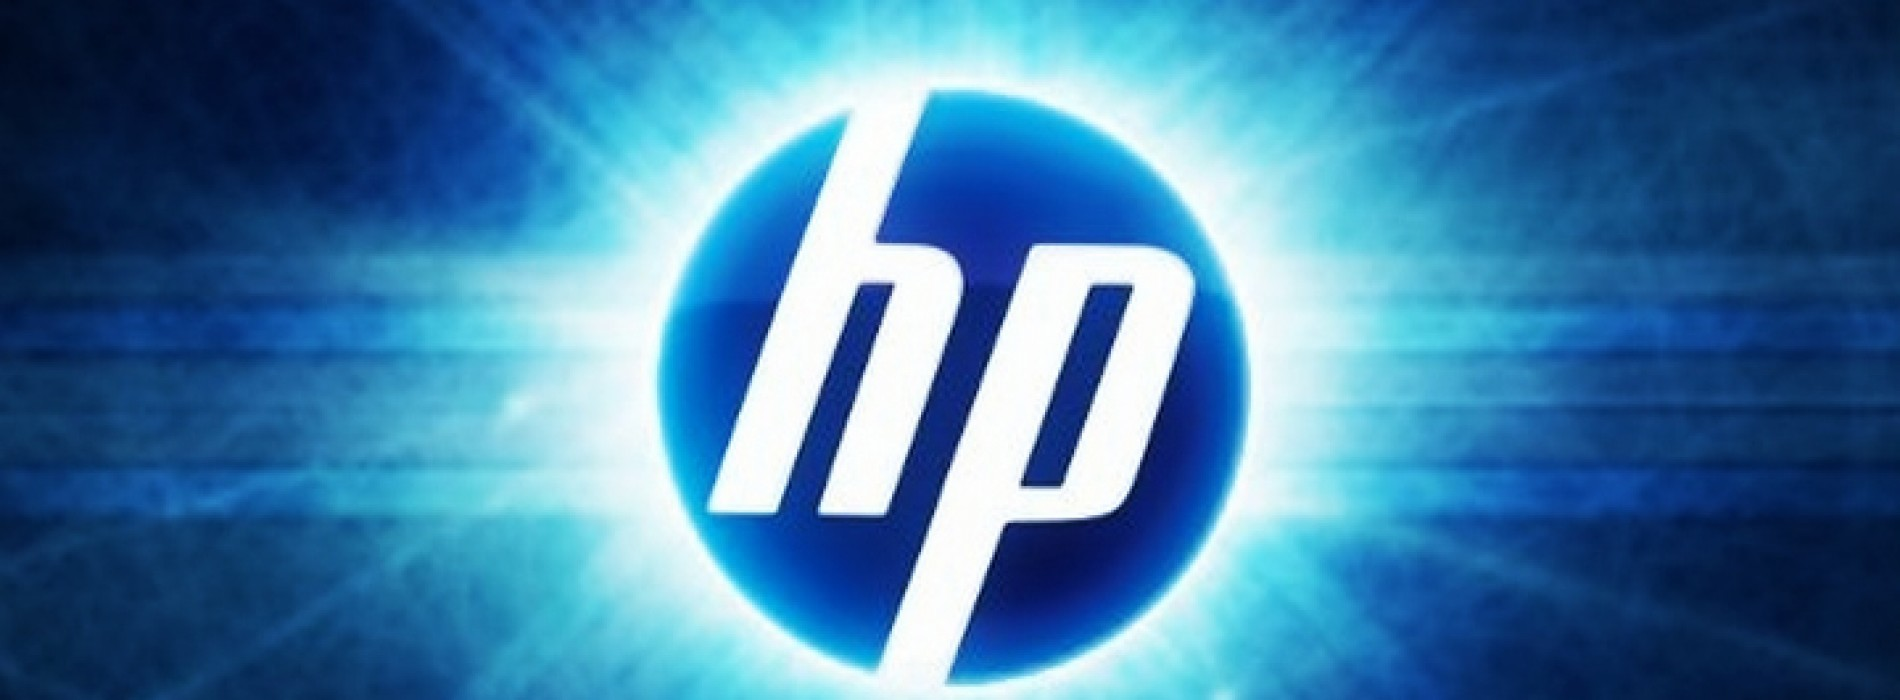 Early details and images of HP 'Brave' surface